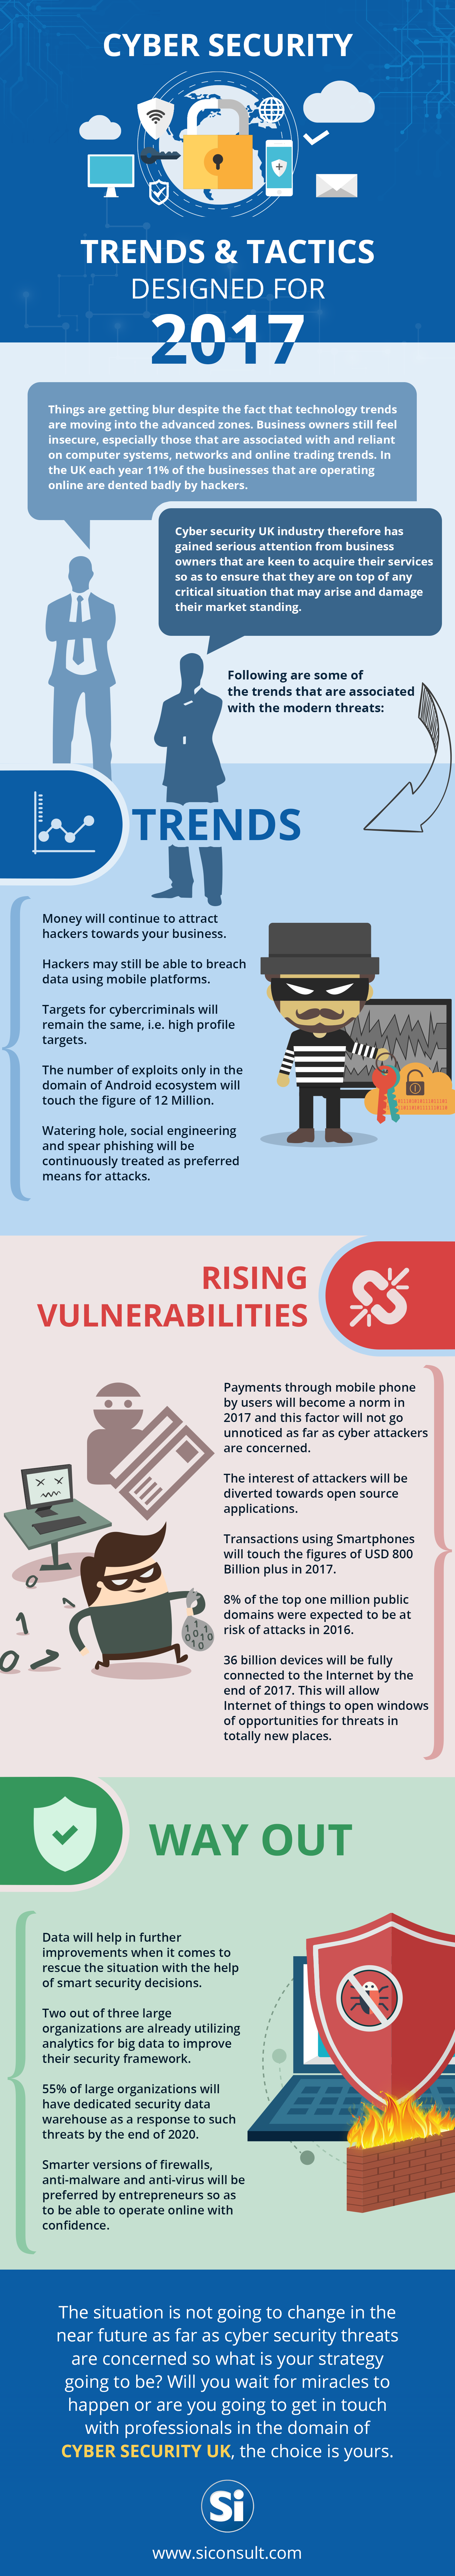 Cyber Security Trends And Tactics Designed For 2017! Infographic